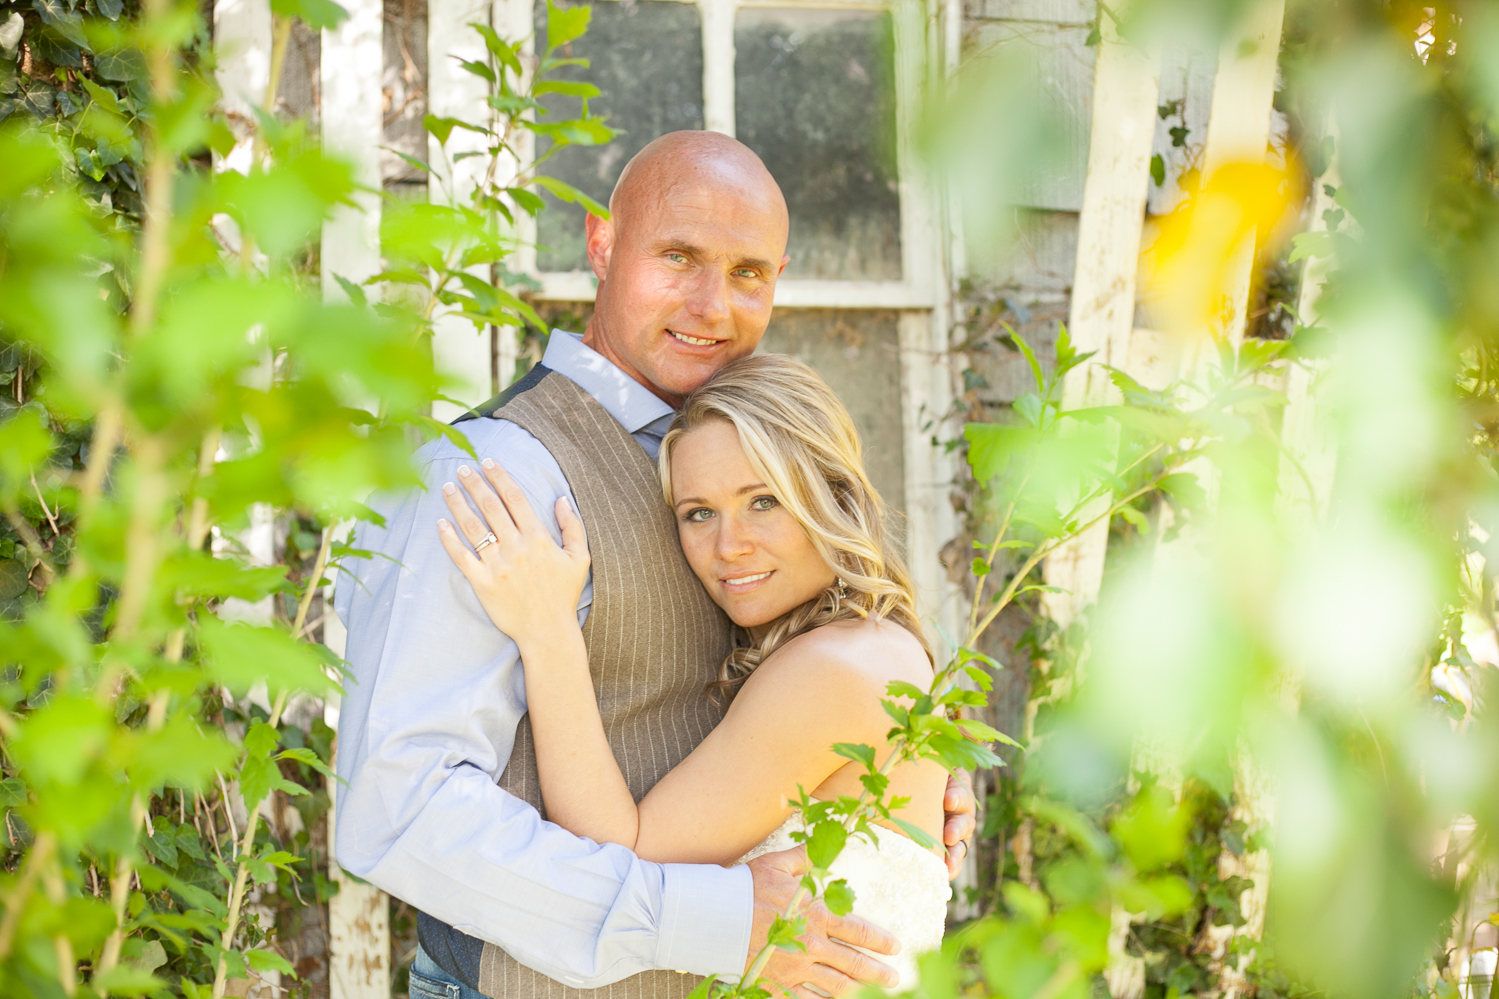 Murfreesboro wedding photographer